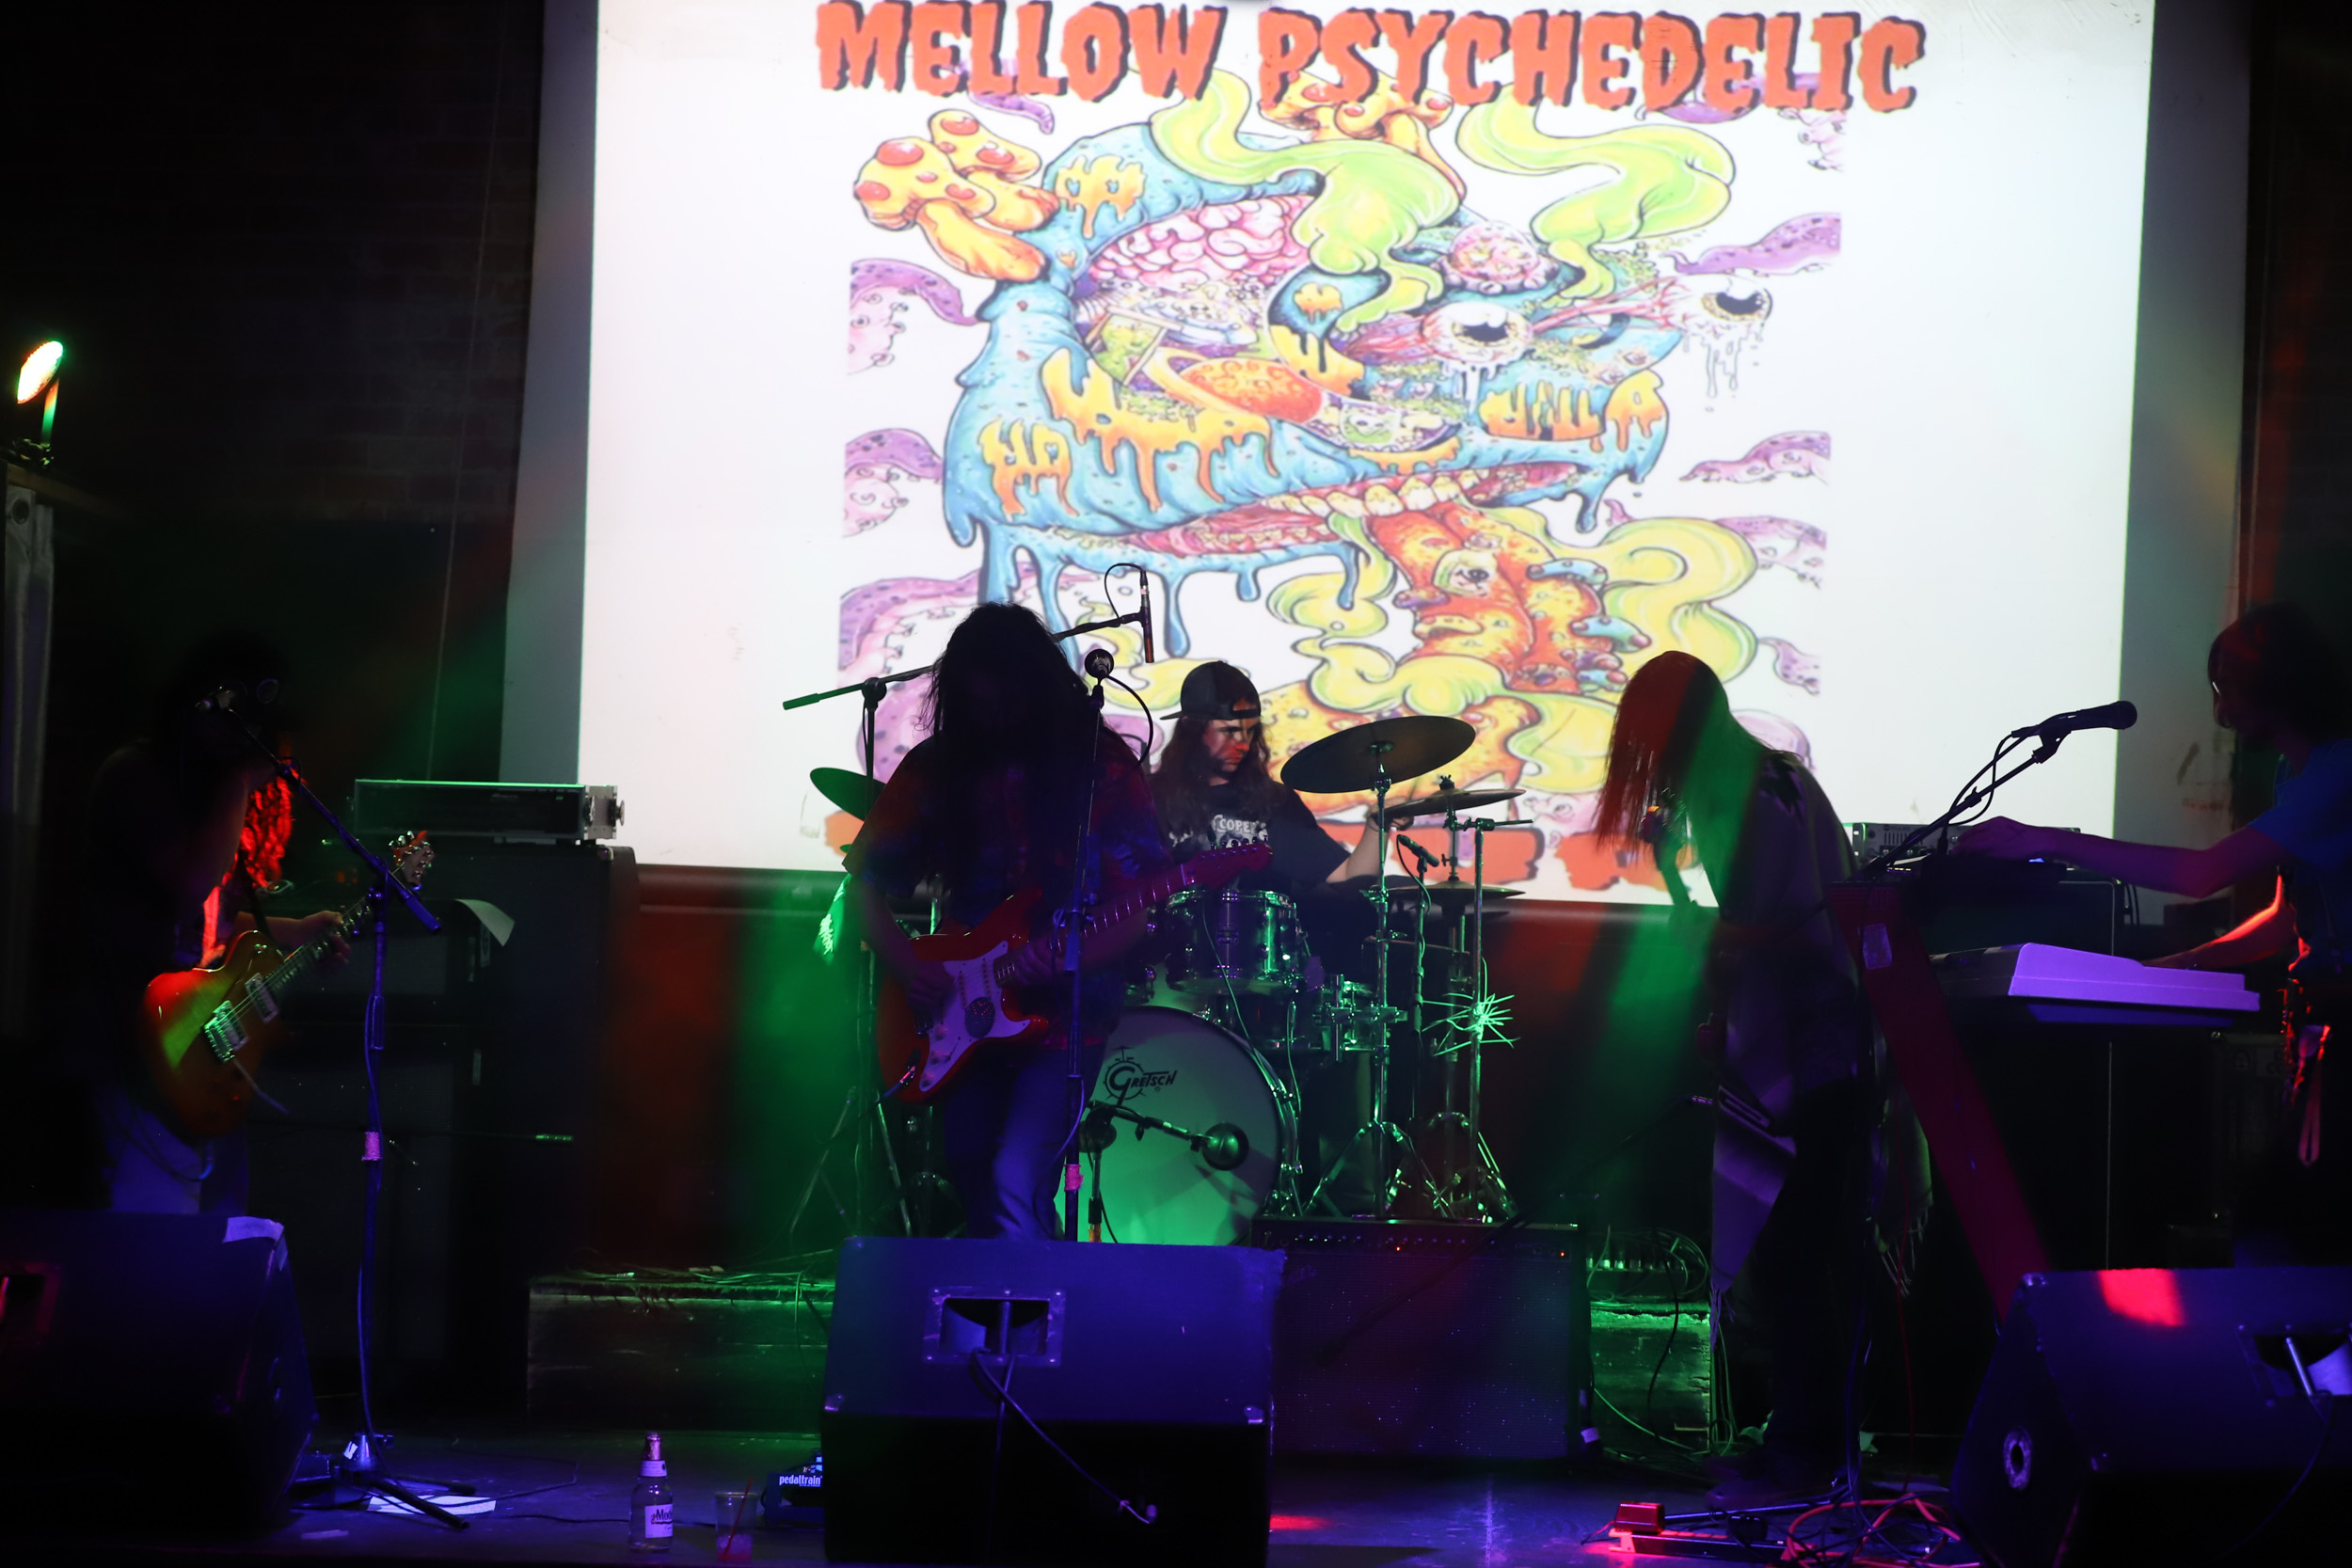 Mellow Psychedelic Culture - 2019-03-30 at The Hut in Tucson, AZ